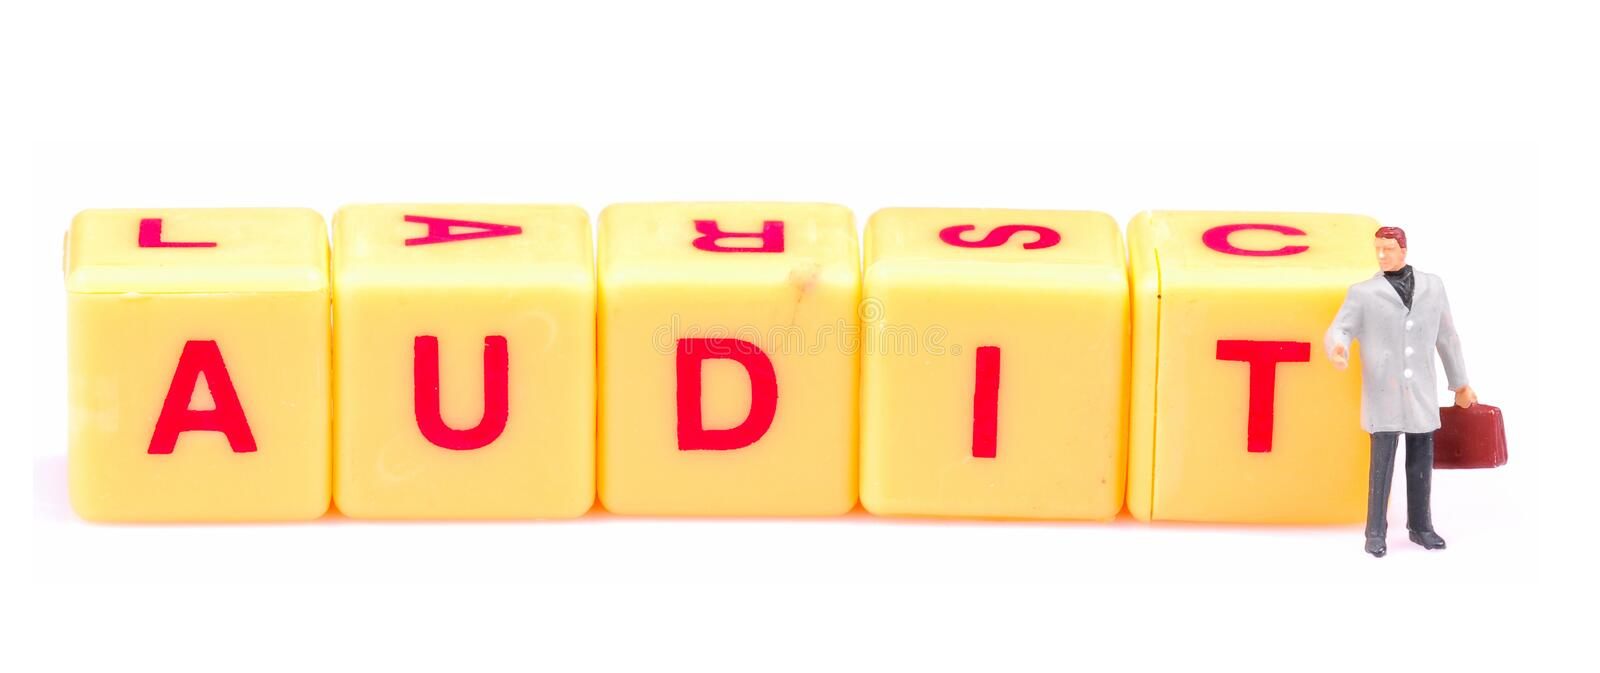 Audit royalty free stock image